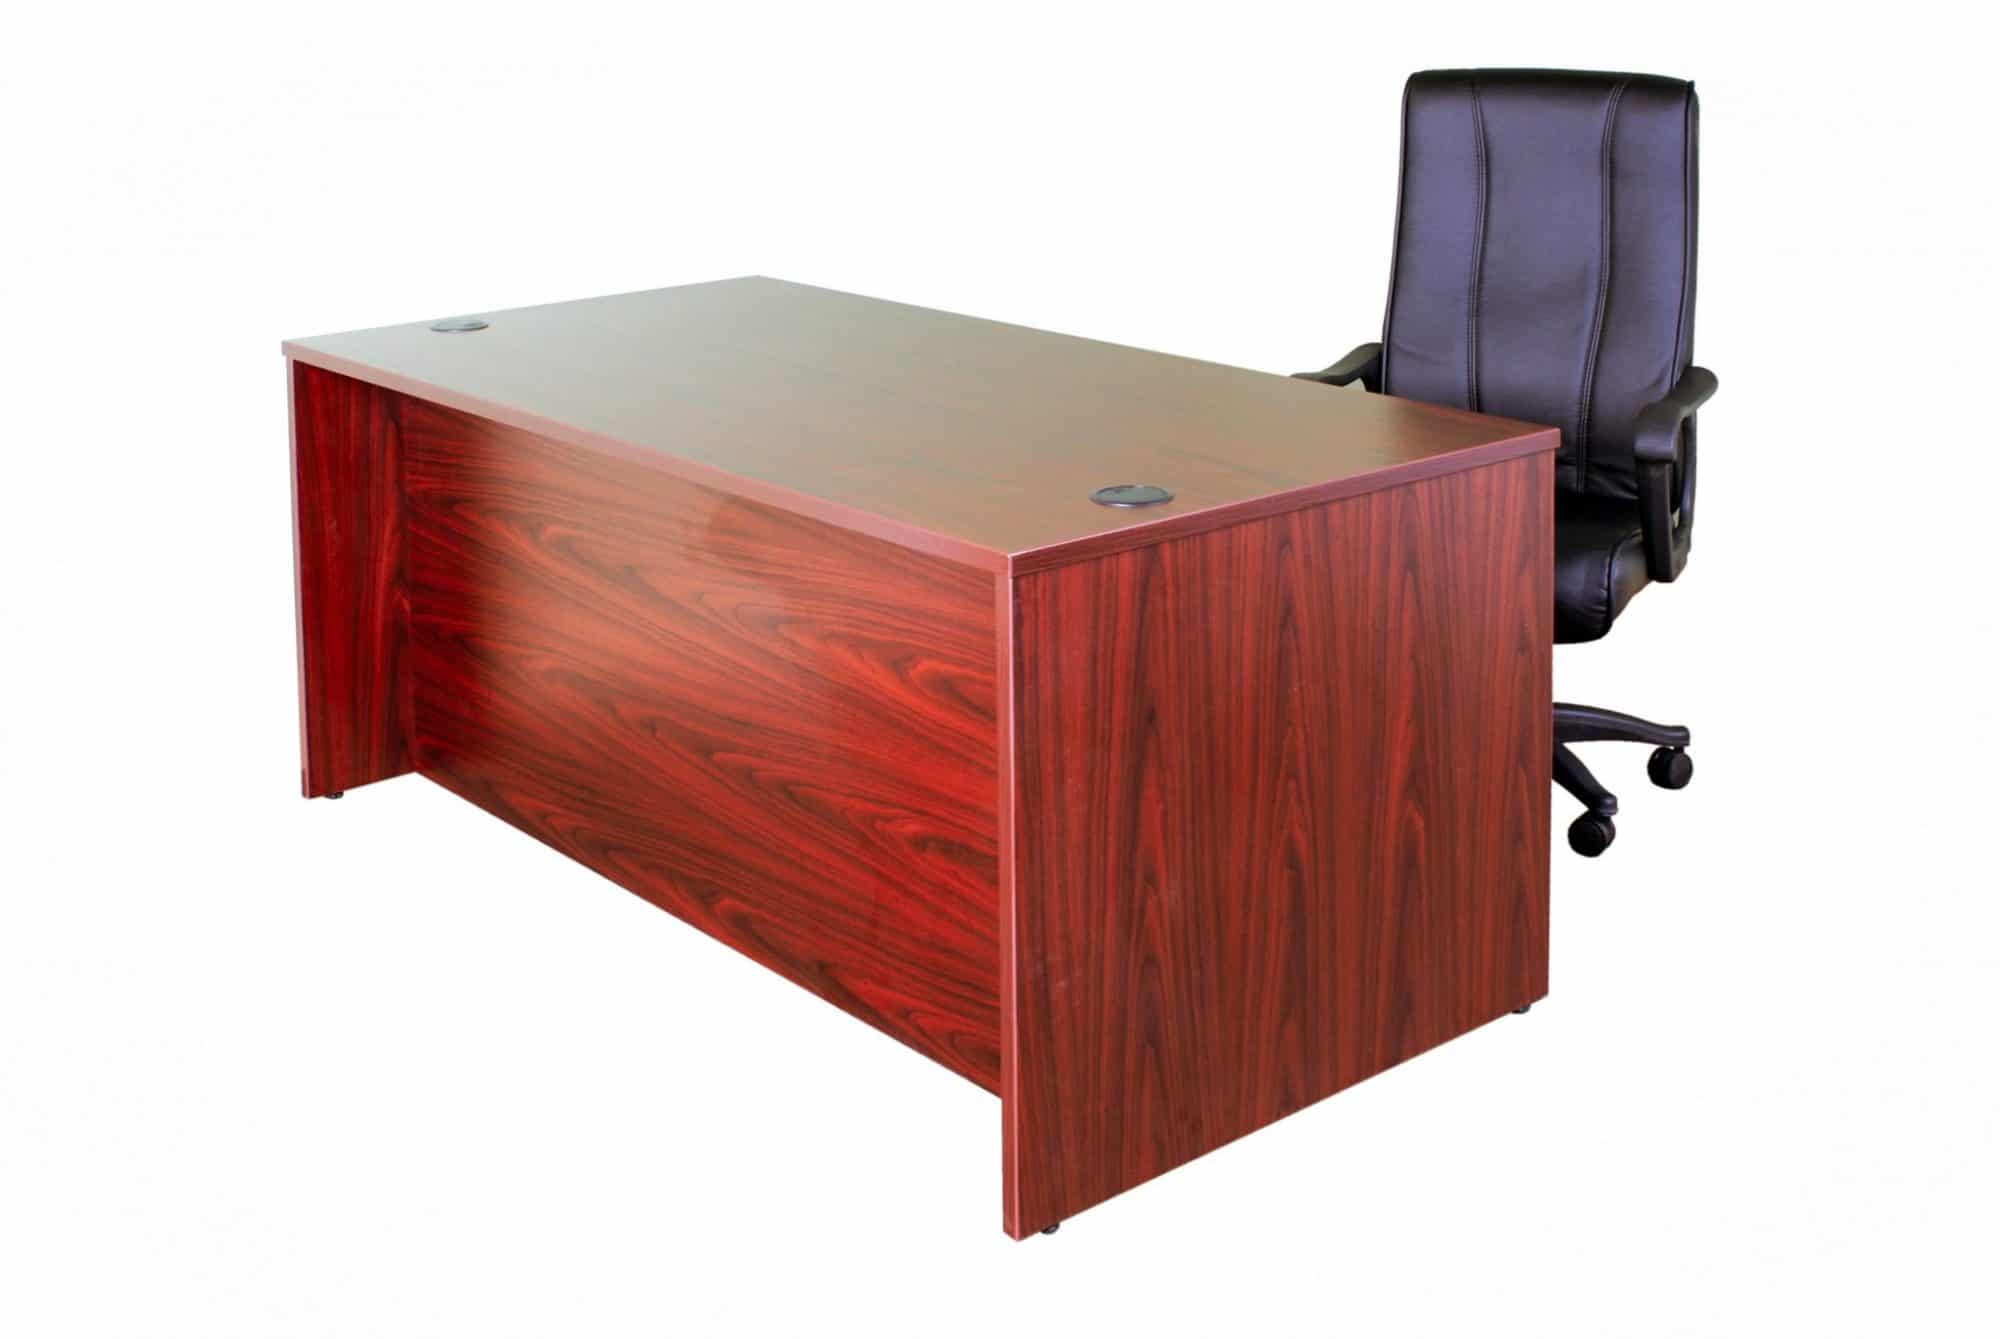 image for desk gallery portfolio, single pedestal desk